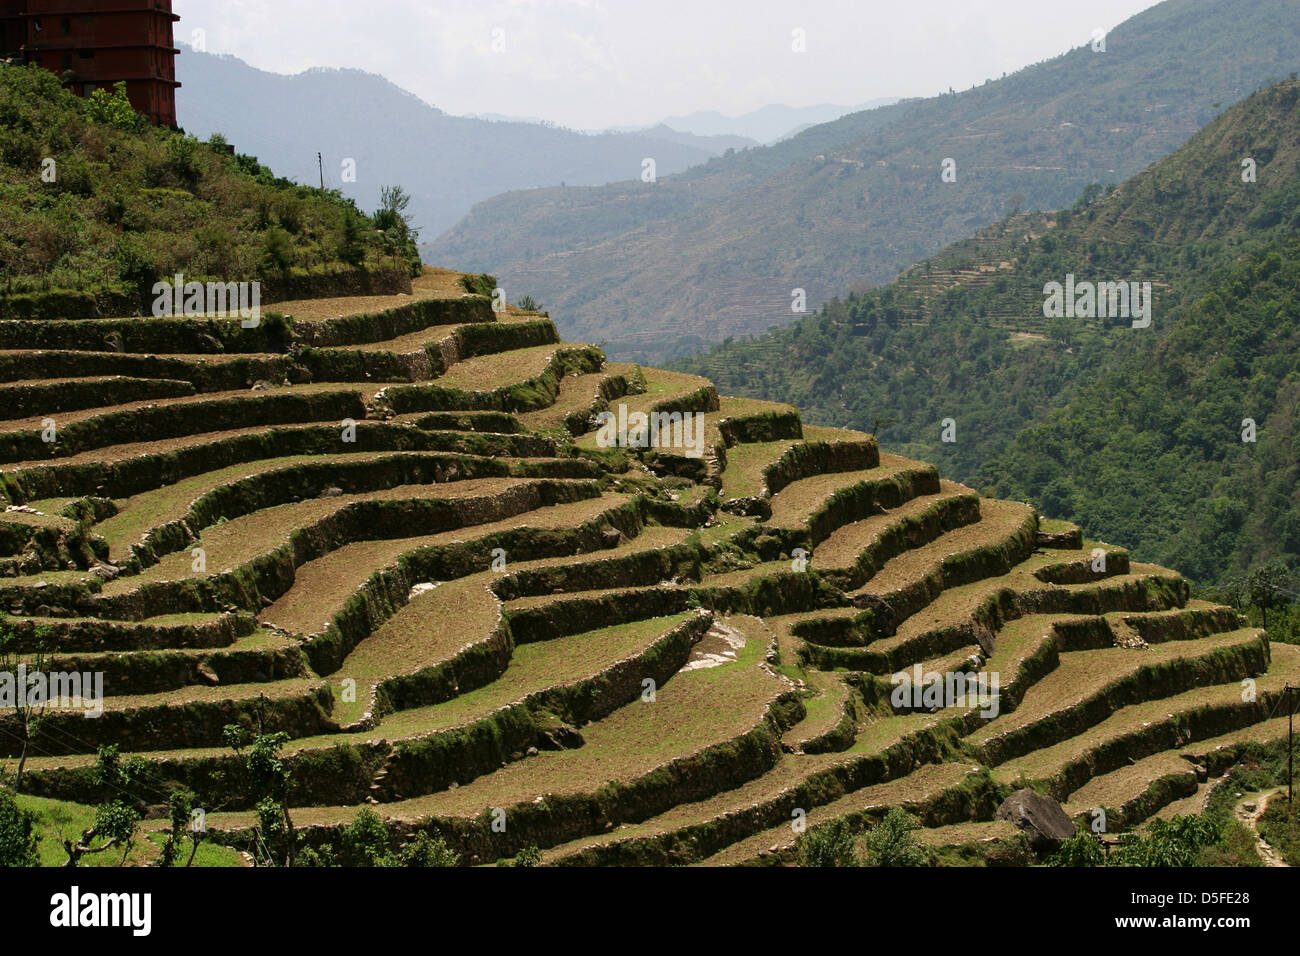 Terraced upland farming in the garhwal mountains stock for Terrace farming in india